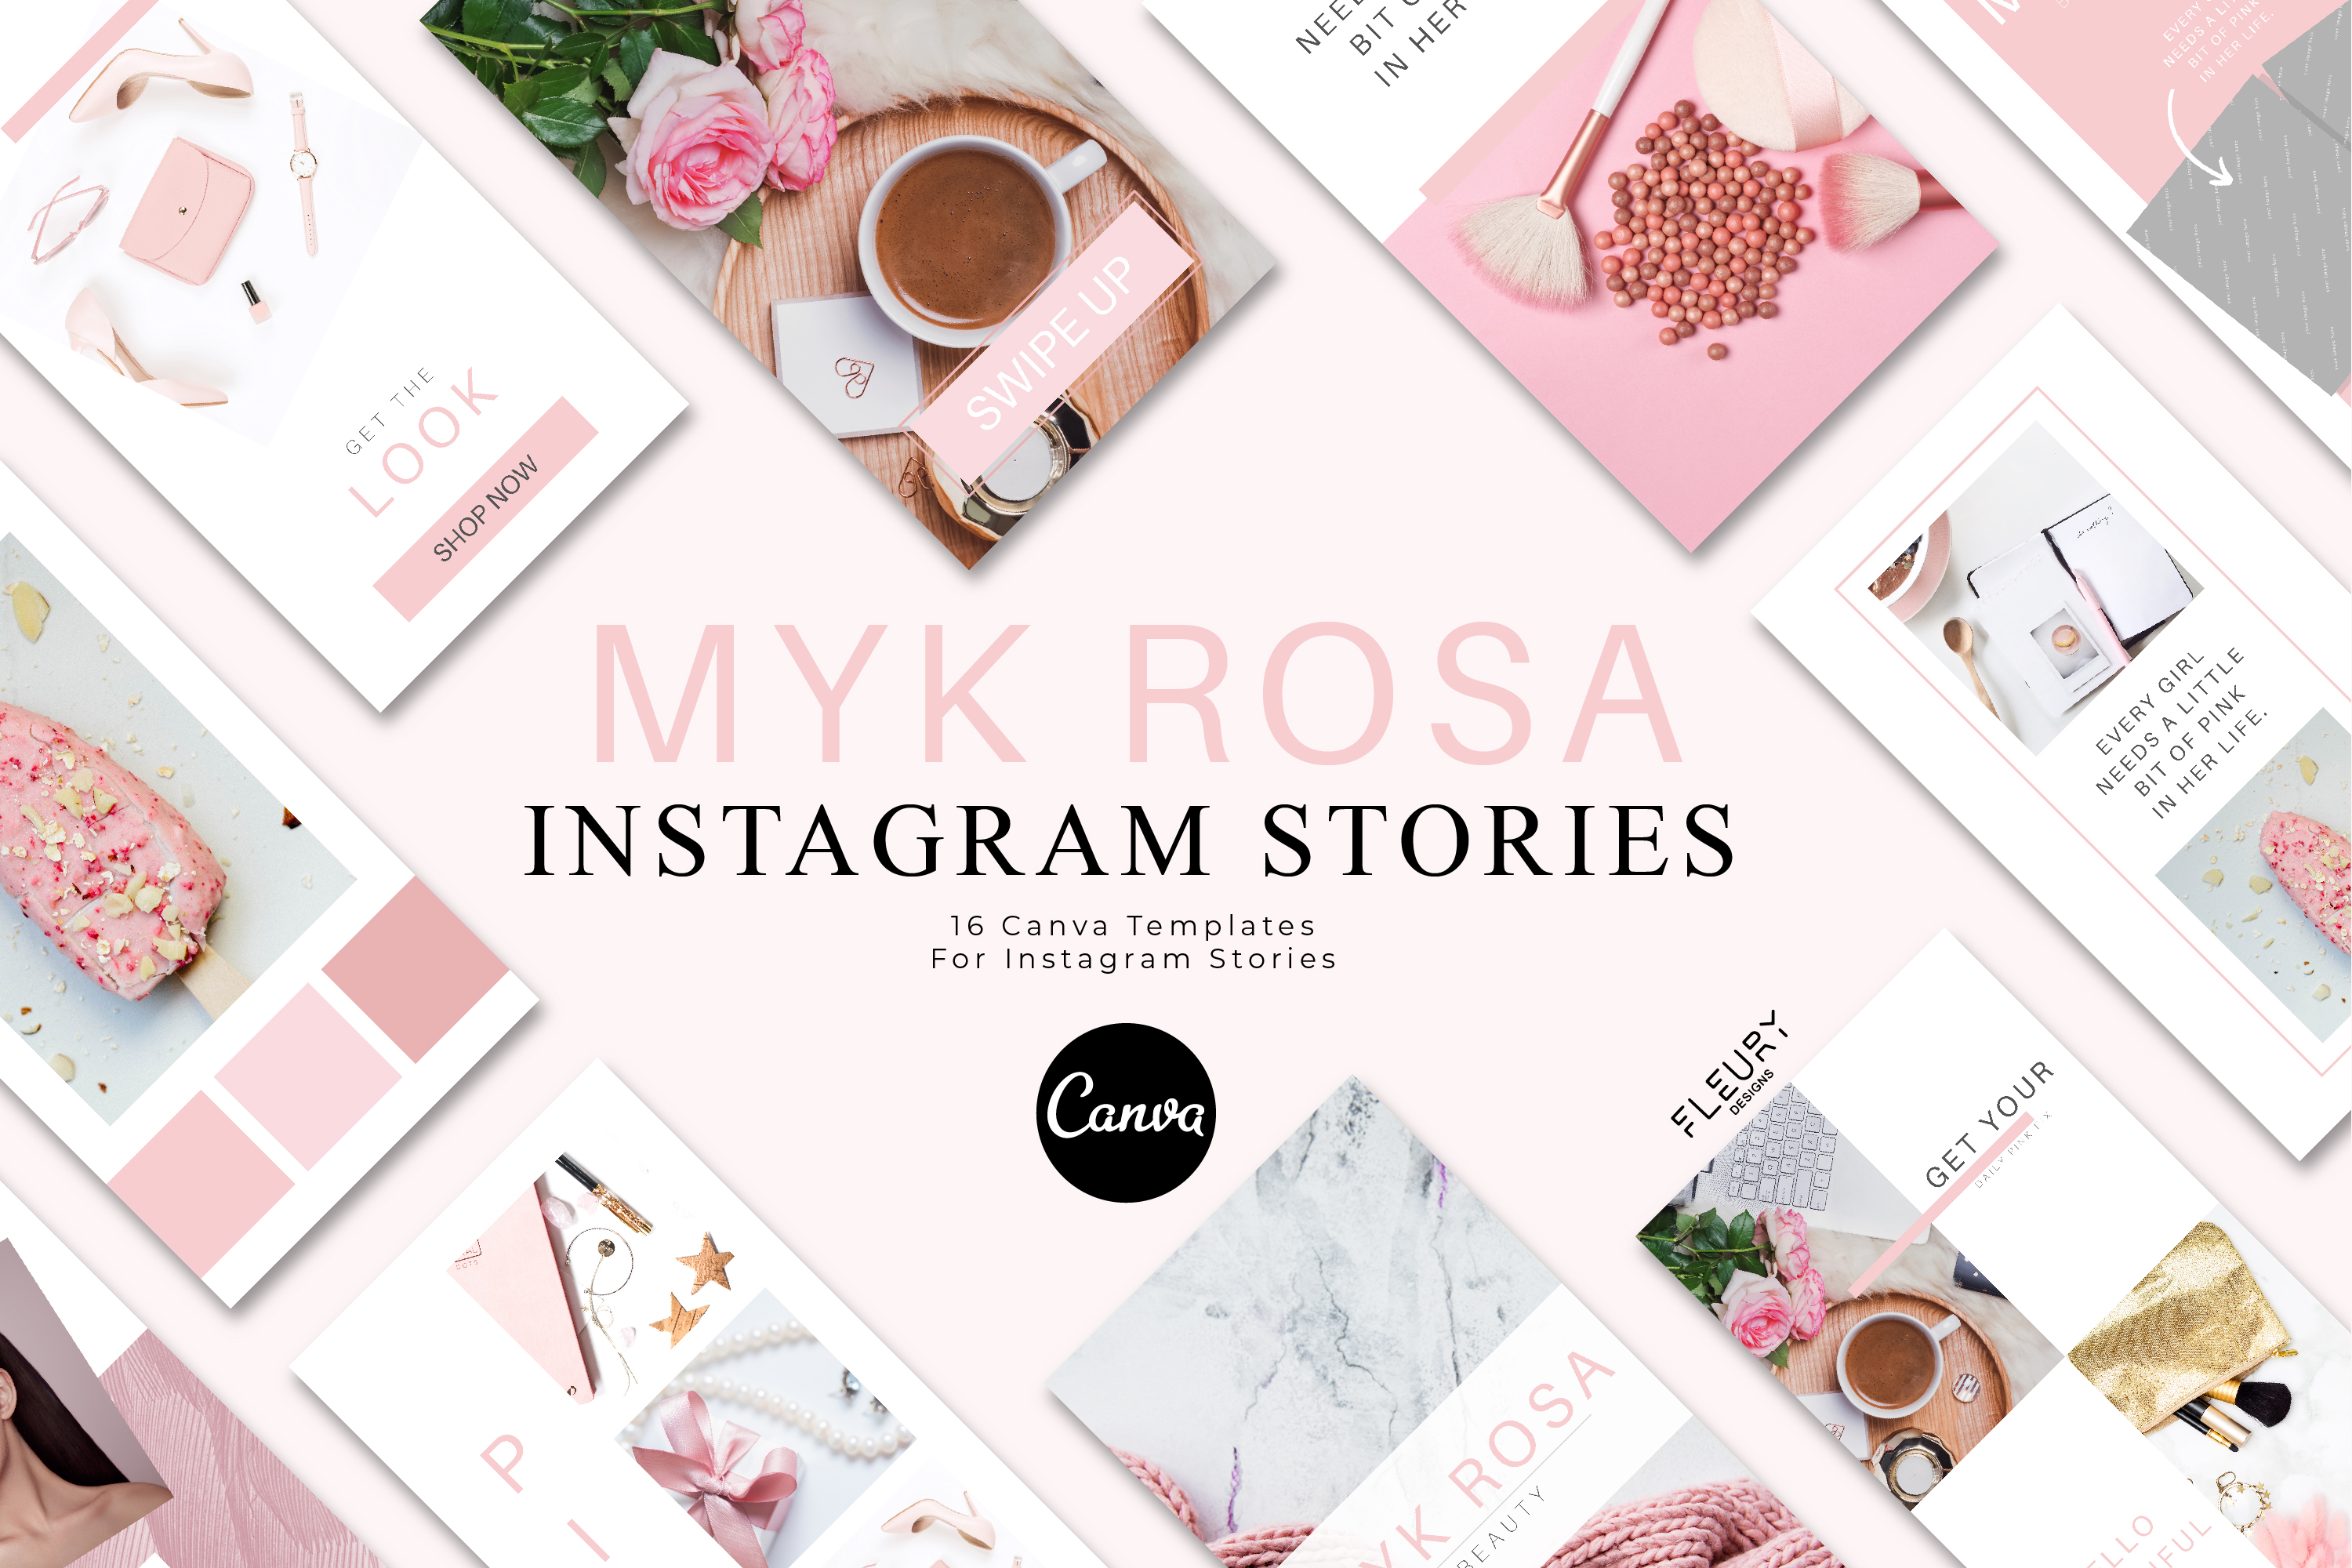 Instagram Story Canva Template - Myk Rosa example image 1